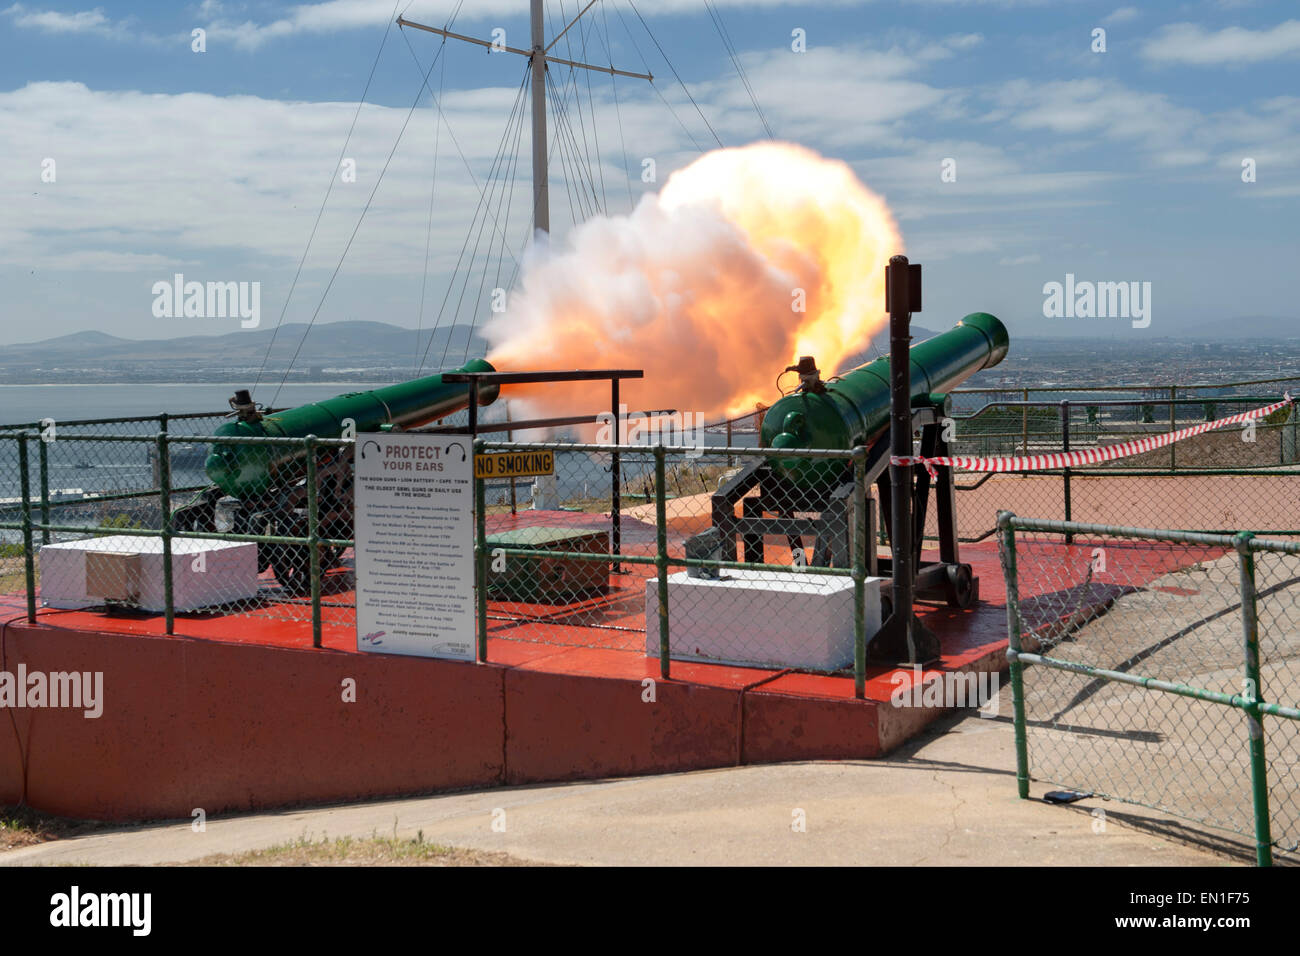 The Noon Gun firing in Cape Town, South Africa. - Stock Image